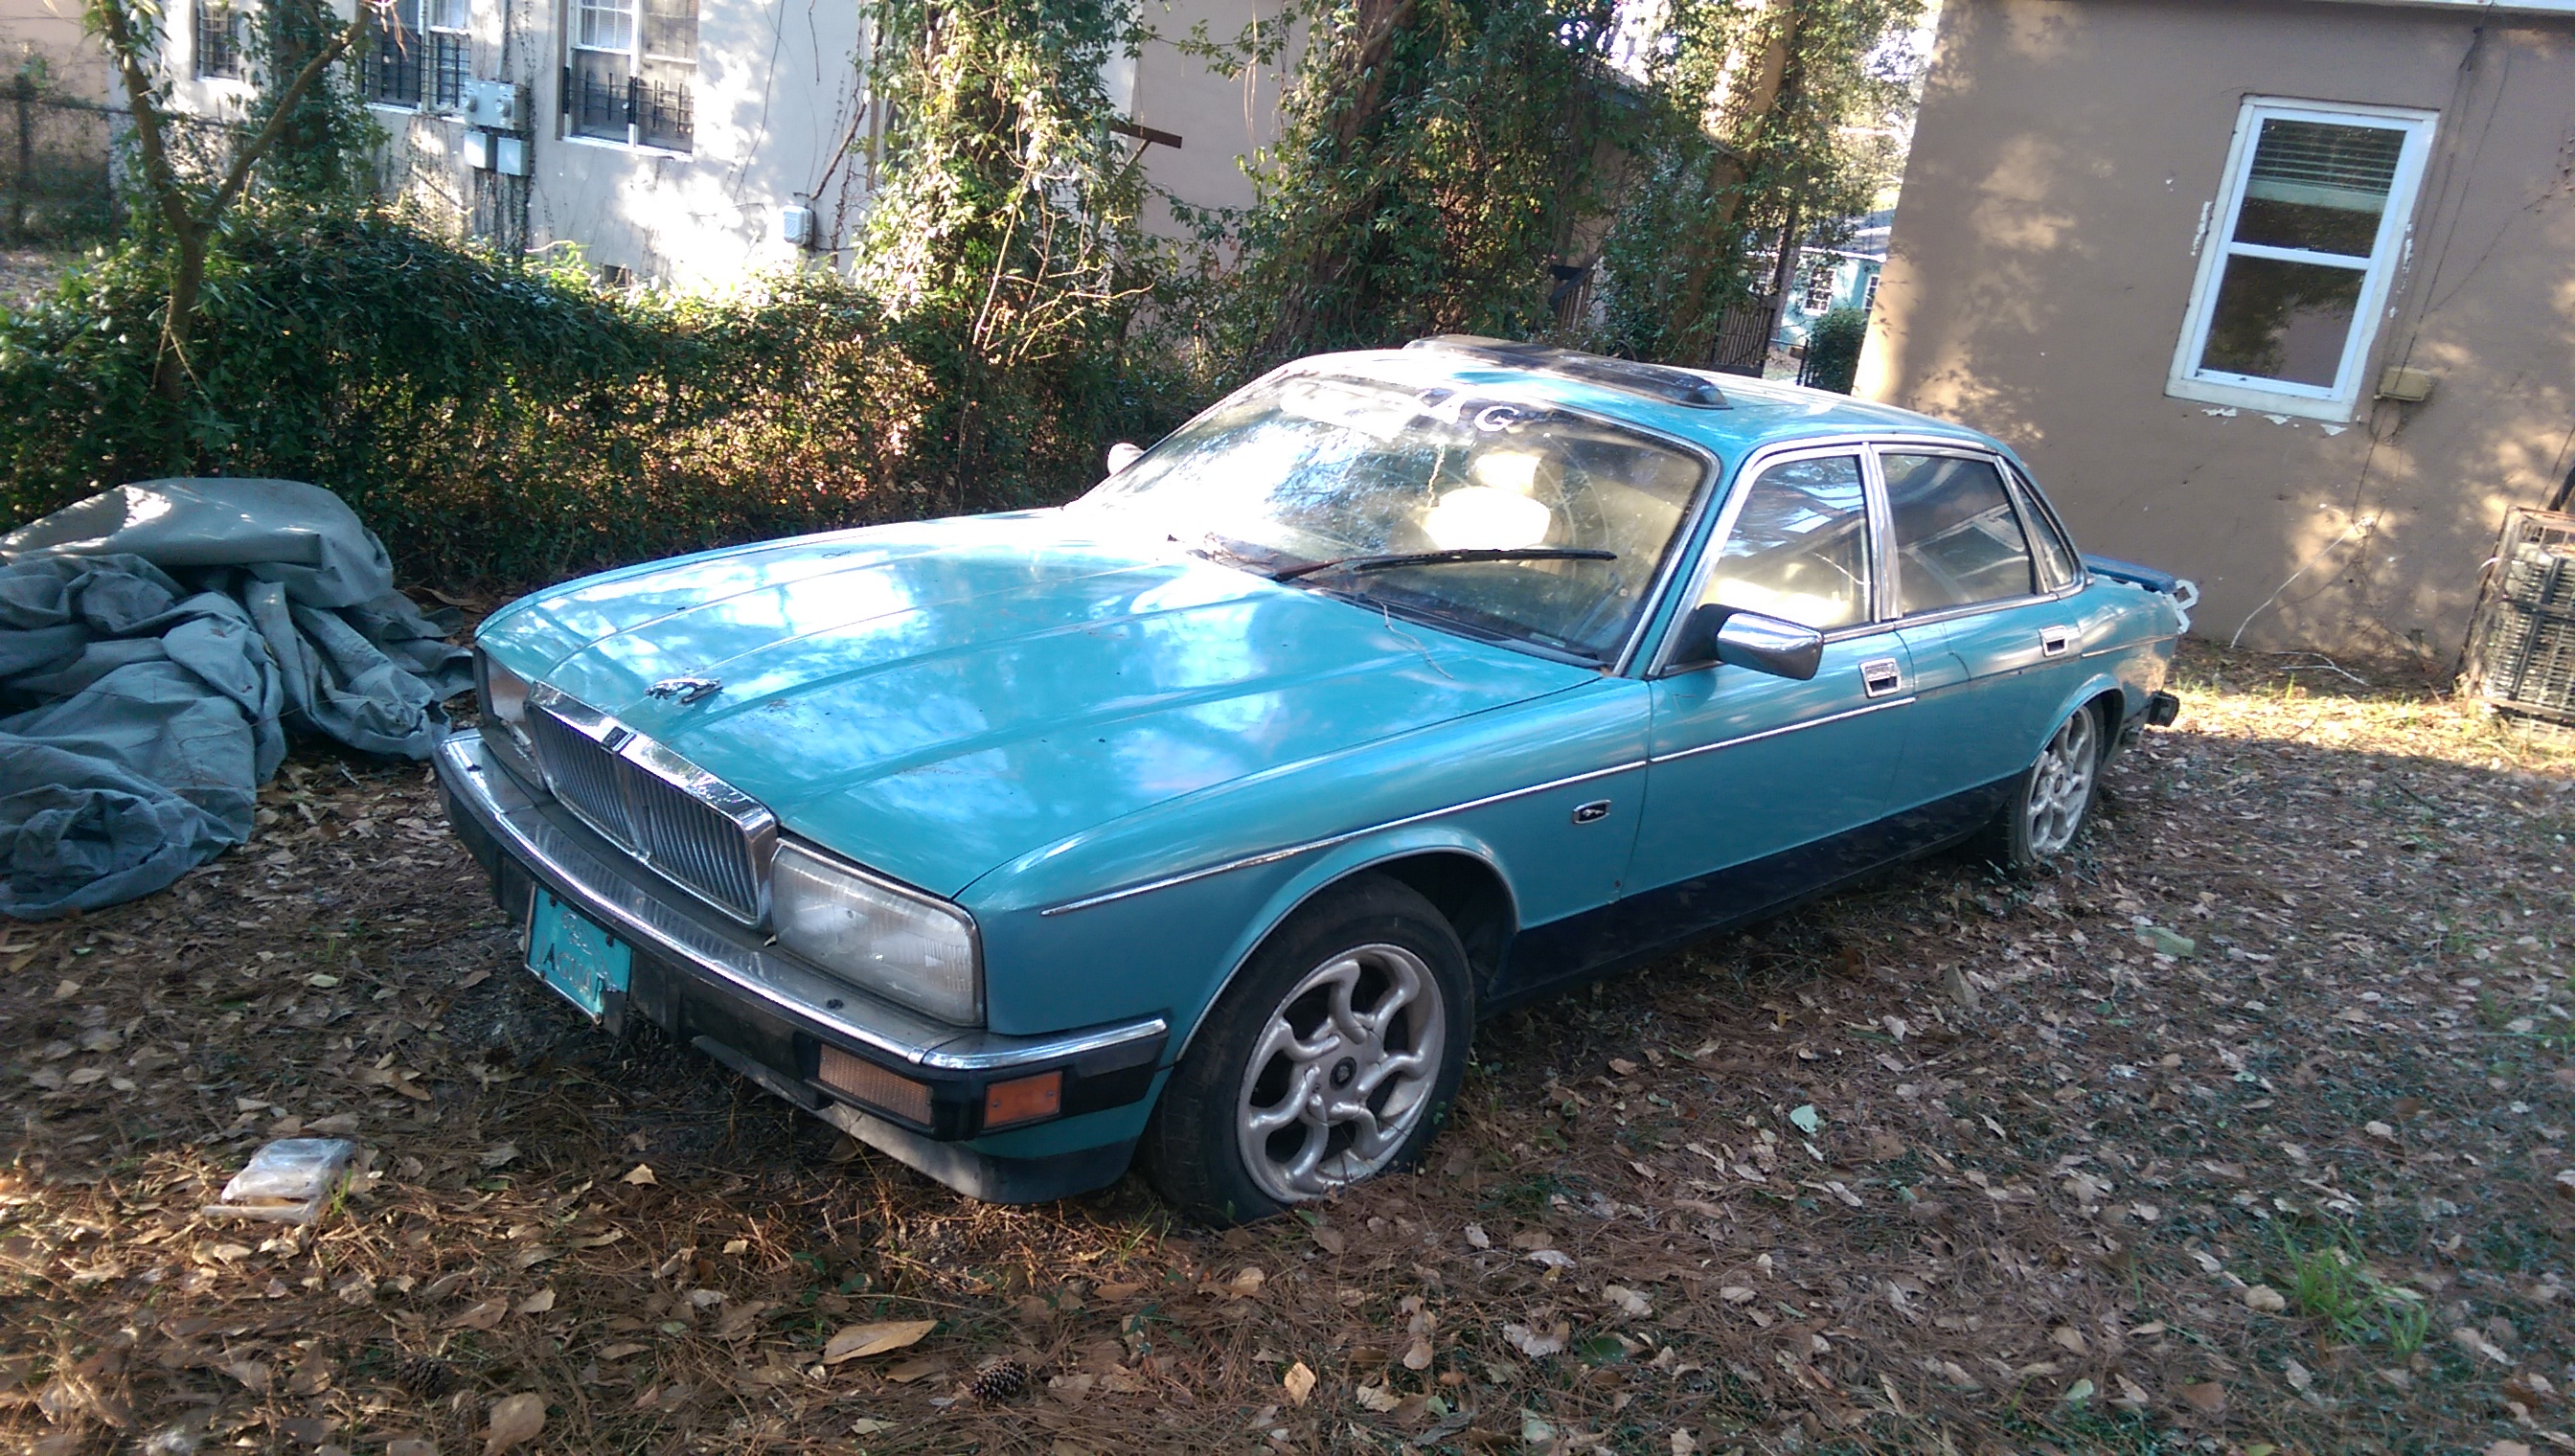 Cash for Cars Marrero, LA | Sell Your Junk Car | The Clunker Junker